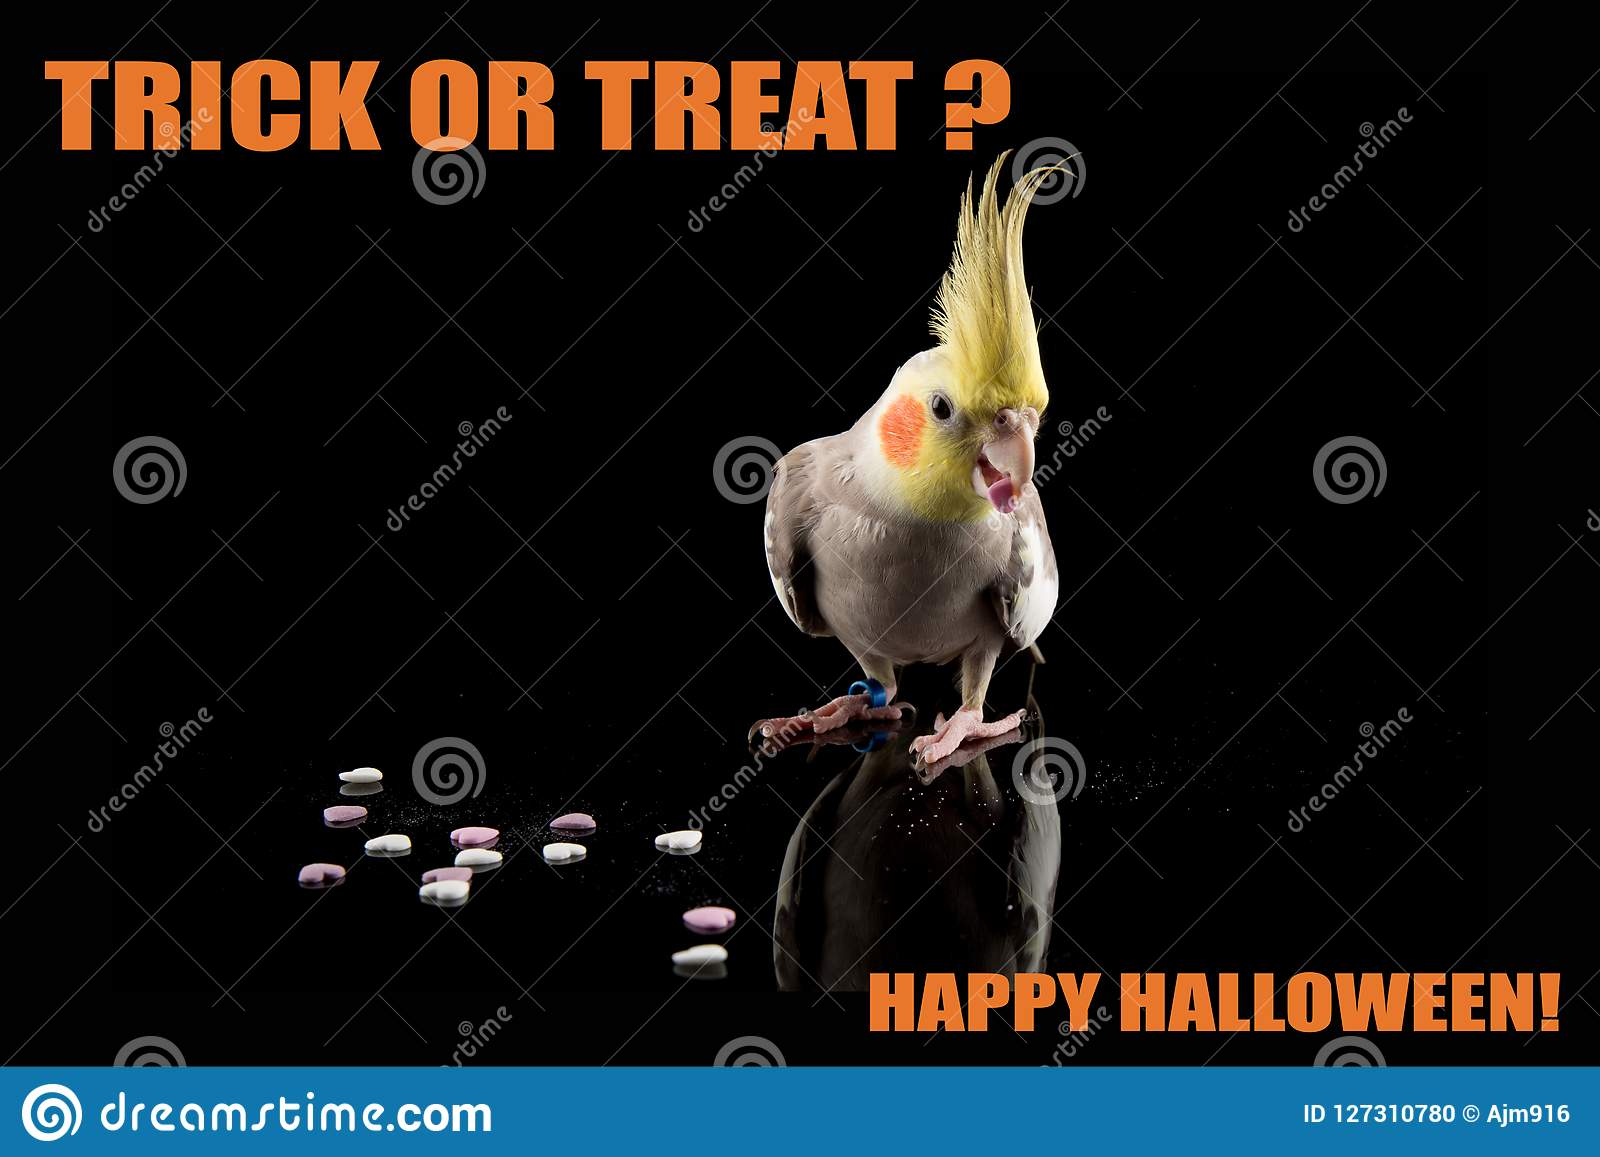 Funny Parrot Halloween Memetrick Or Treat Cockatiel Eating Candy